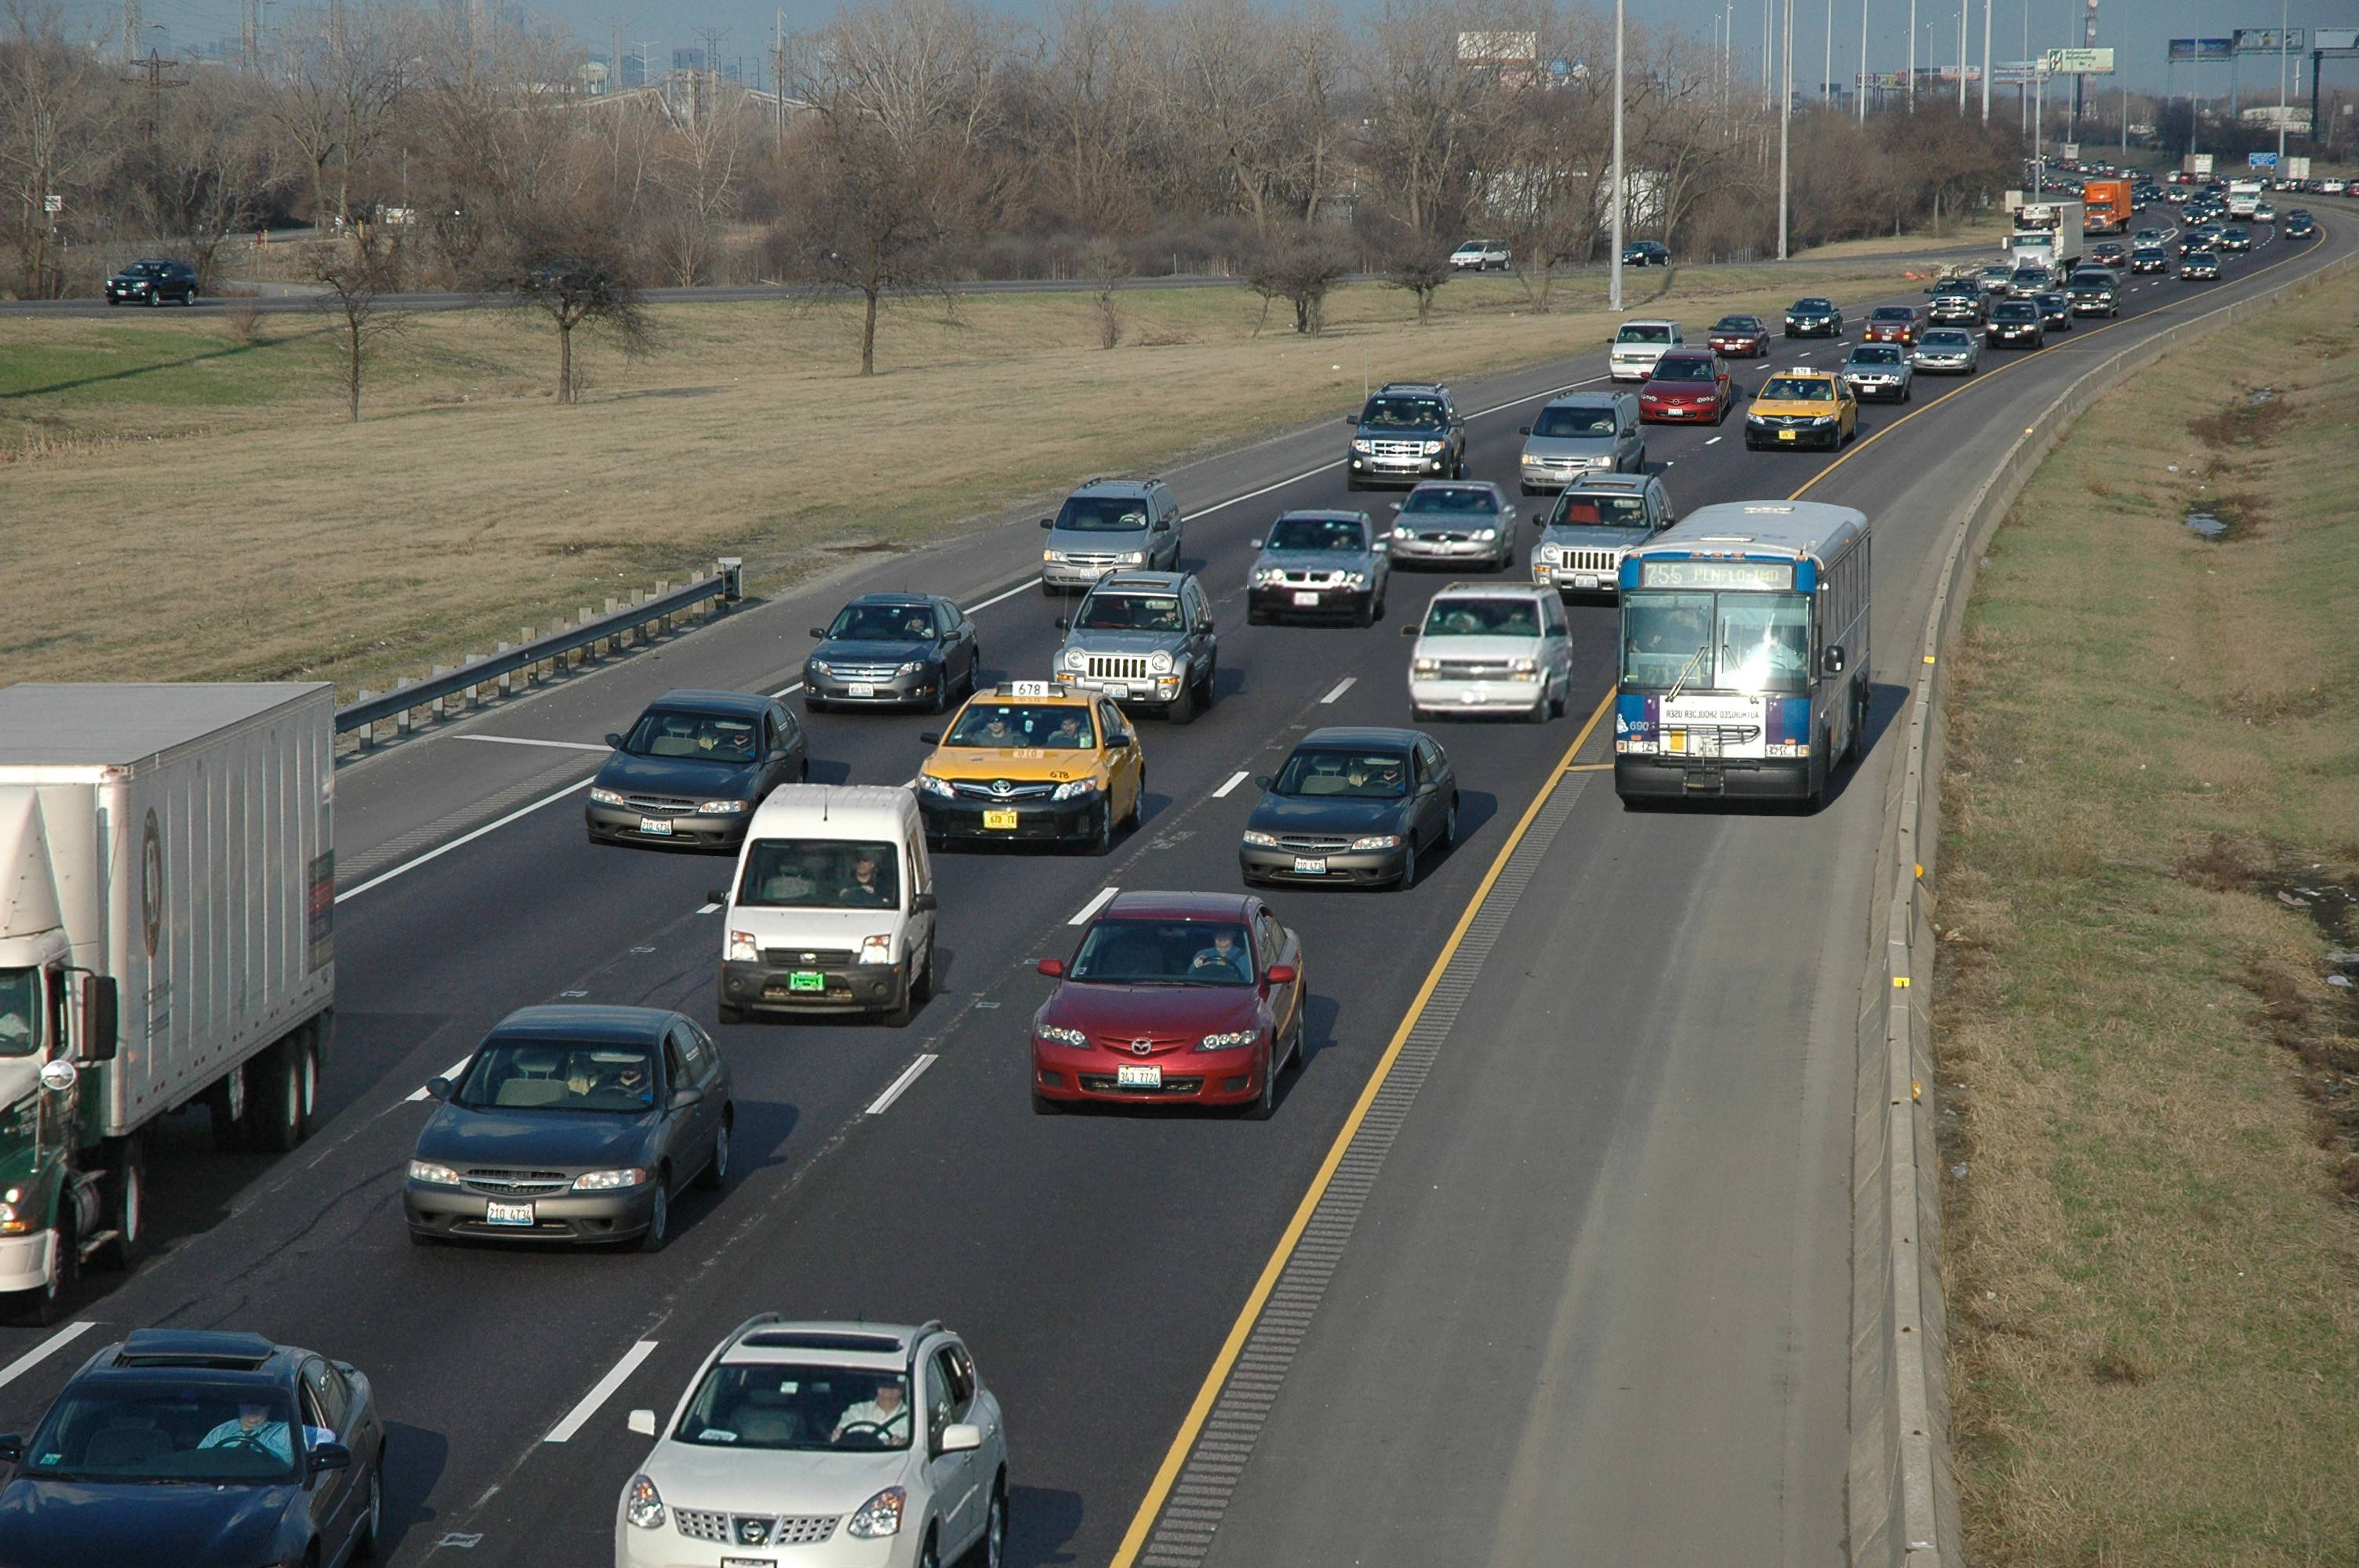 Pace buses have been allowed to travel on the shoulder of I-55 since 2011.